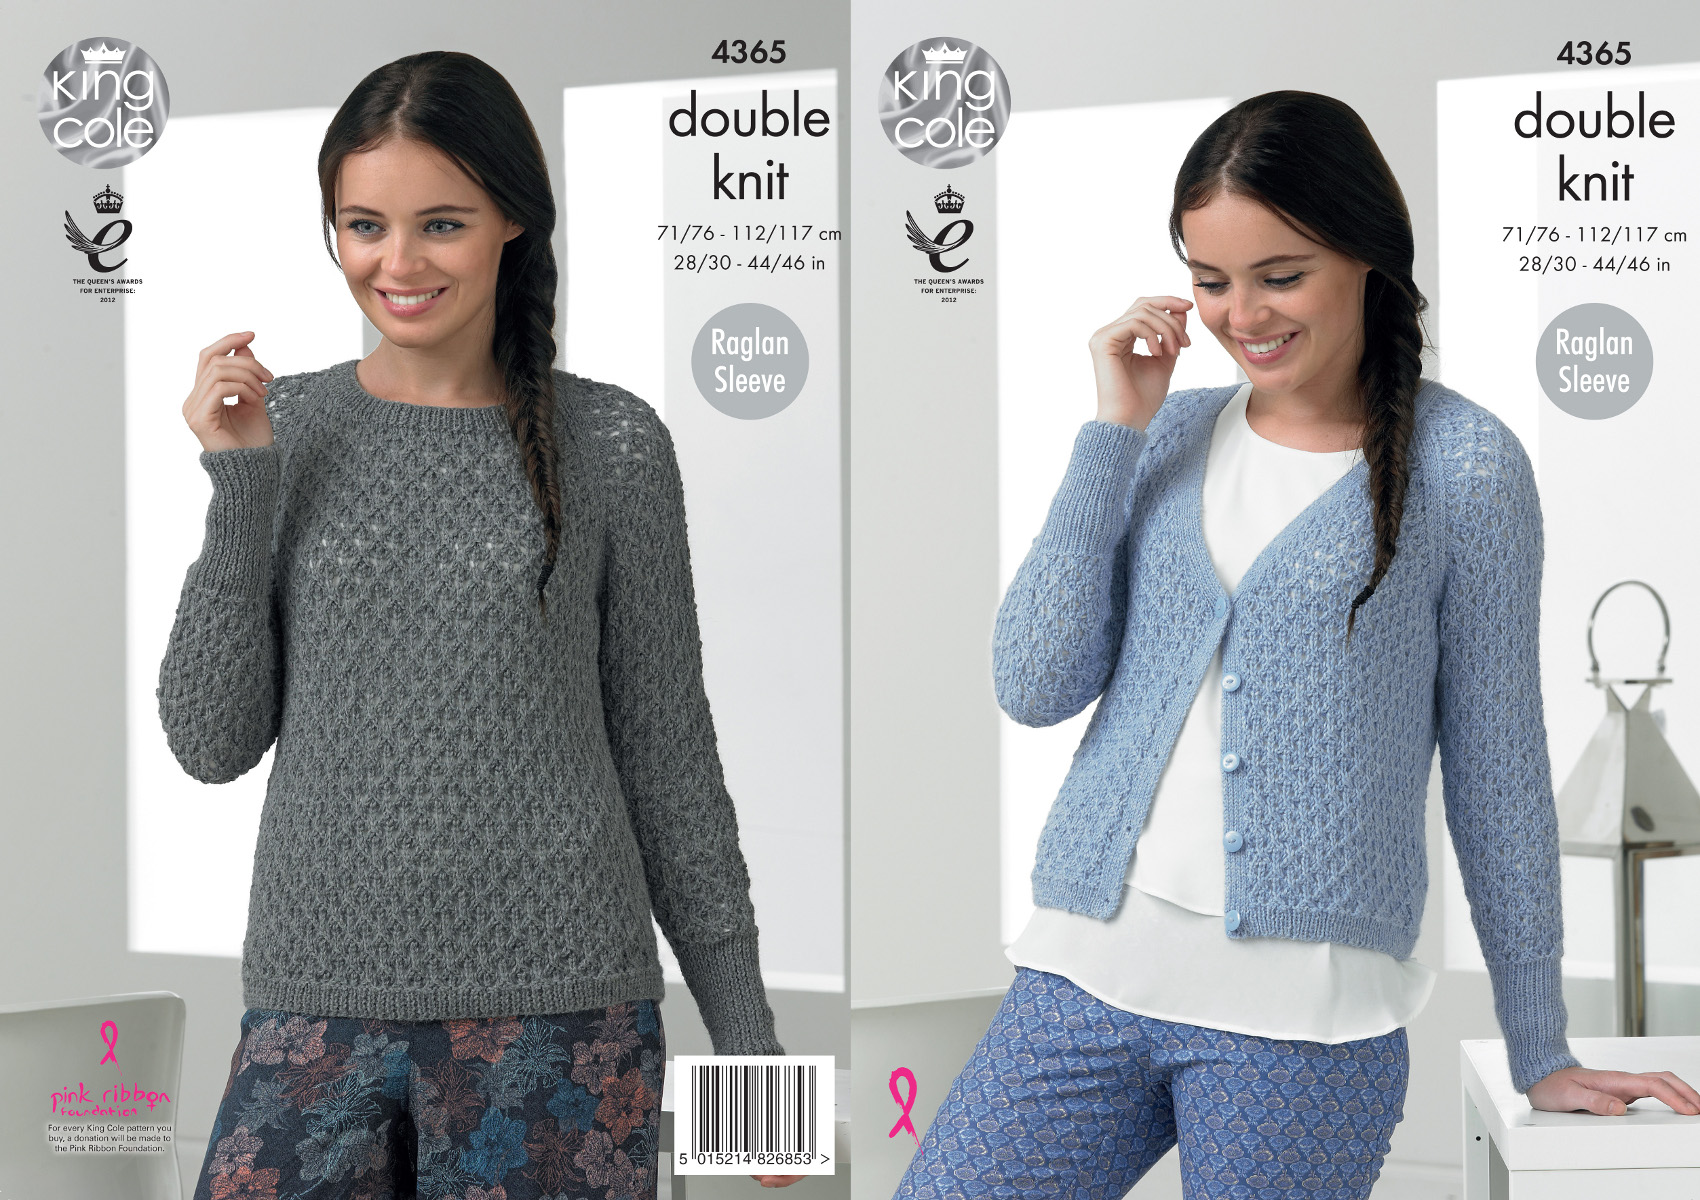 Knitting Jumper Pattern : Raglan sleeve sweater jumper cardigan ladies knitting pattern king